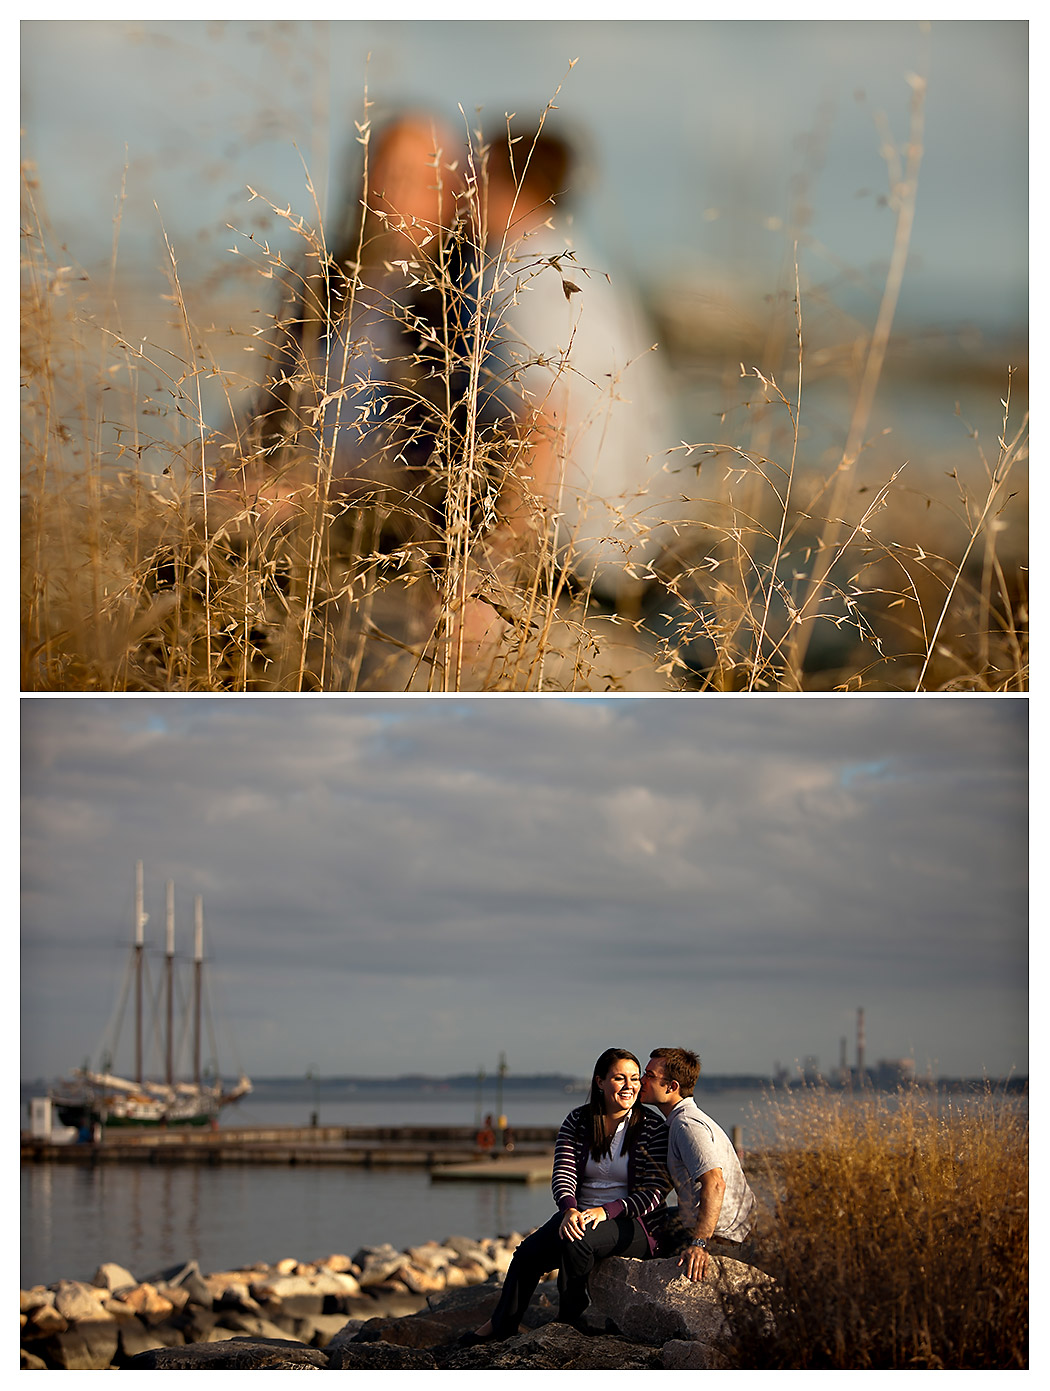 yorktown beach wedding photographers - yorktown beach wedding photographers